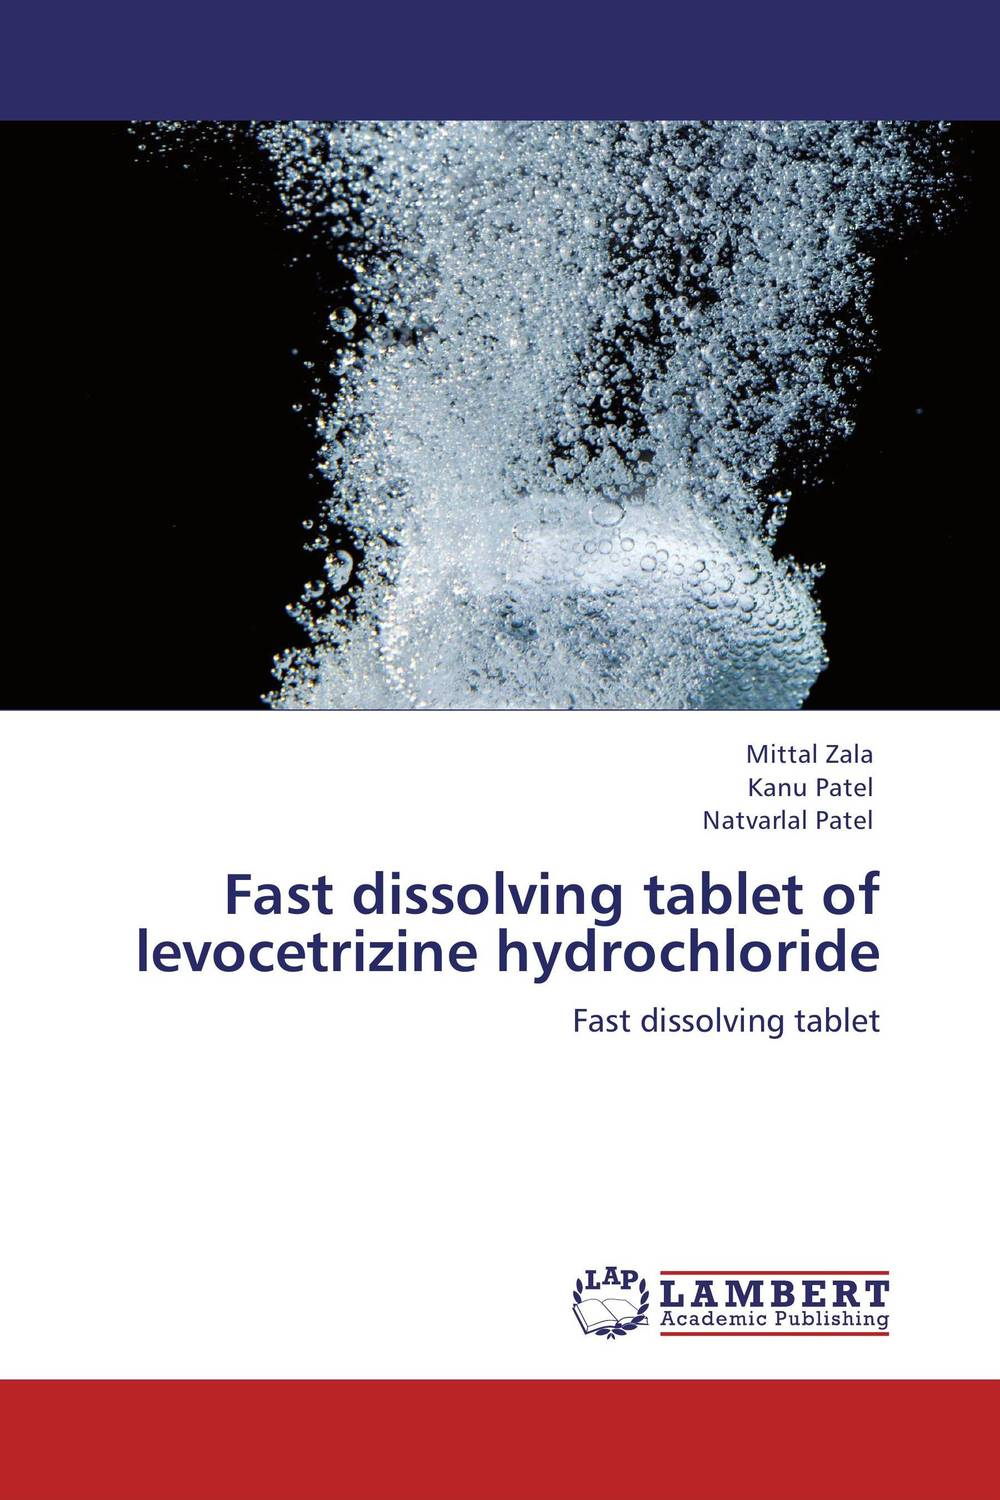 Fast dissolving tablet of levocetrizine hydrochloride portable low level laser allergic rhinitis treatment machine reduce hay fever rhinorrhea sneeze rhinobyon and etc symptoms